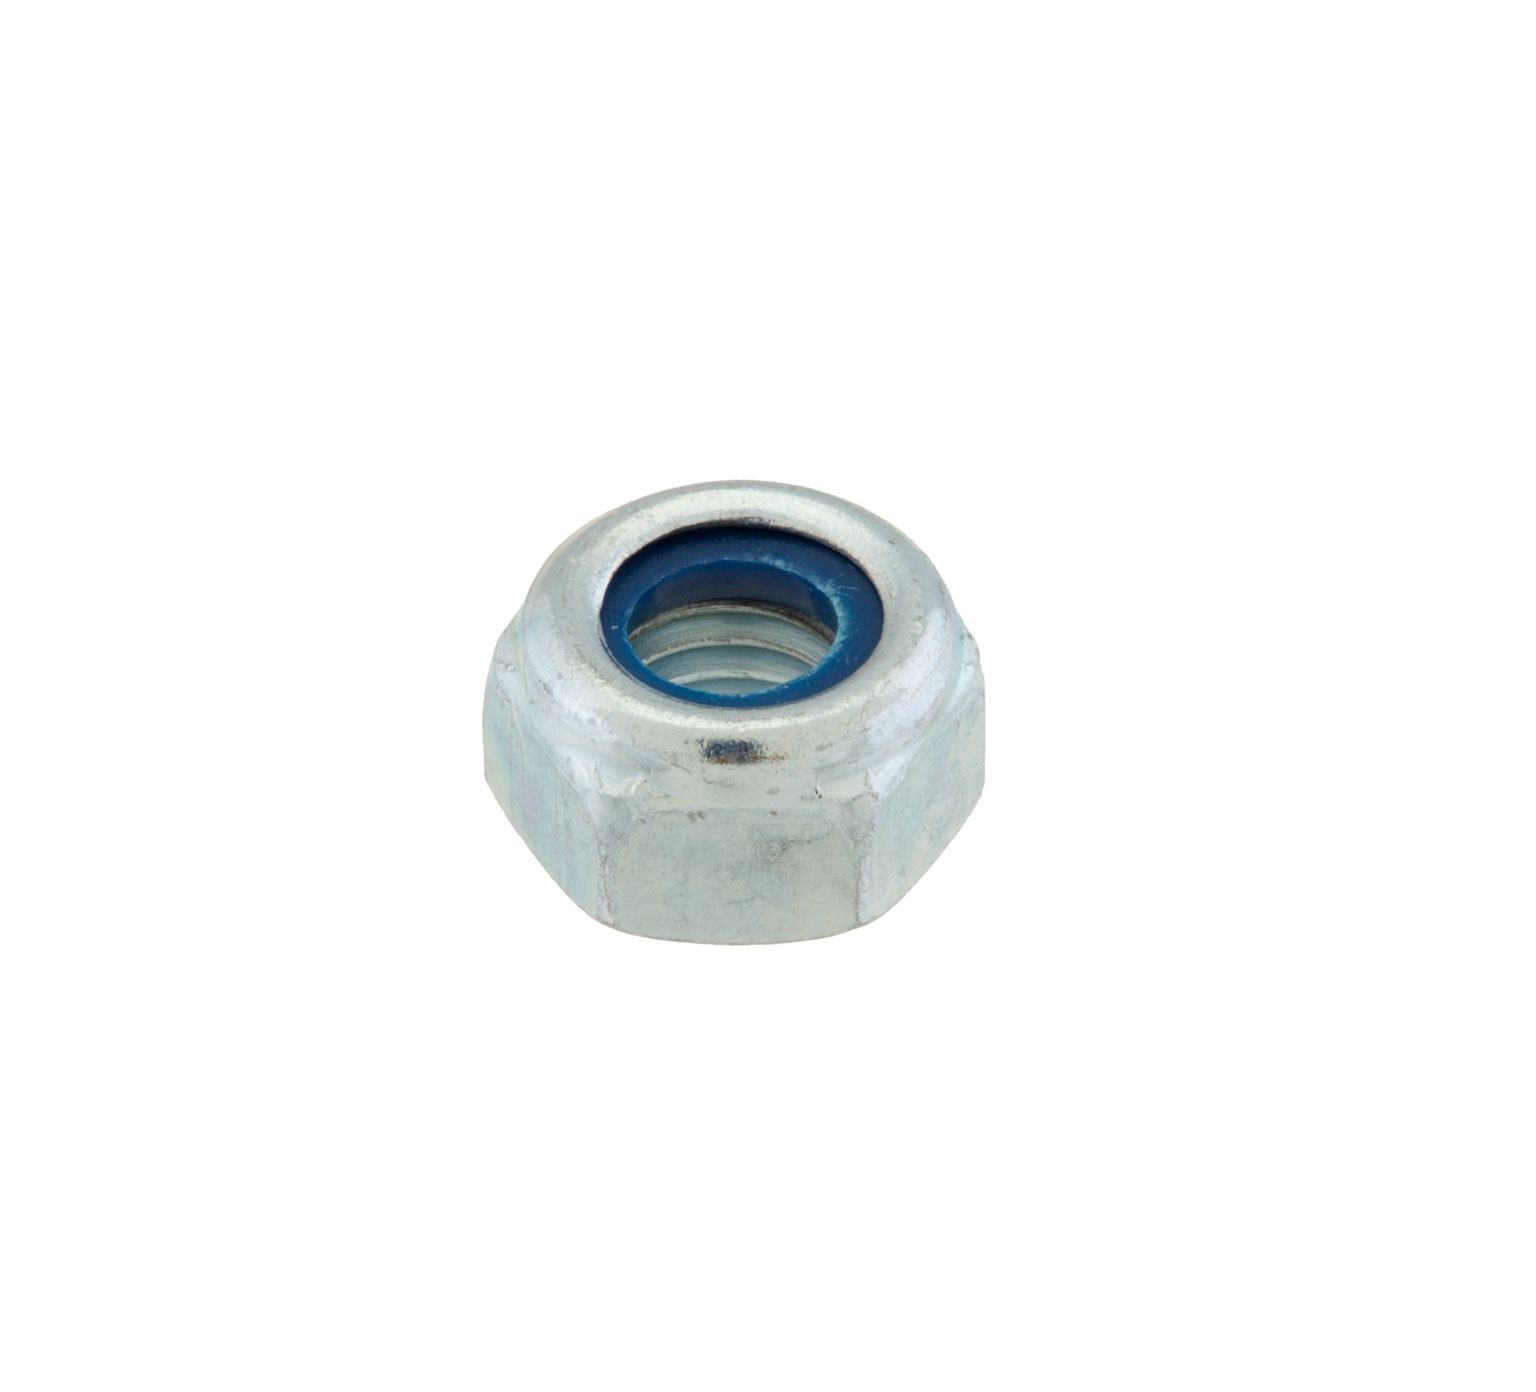 08709 Steel Hex Lock Nut - M8 Thread x 0.276 in alt 1